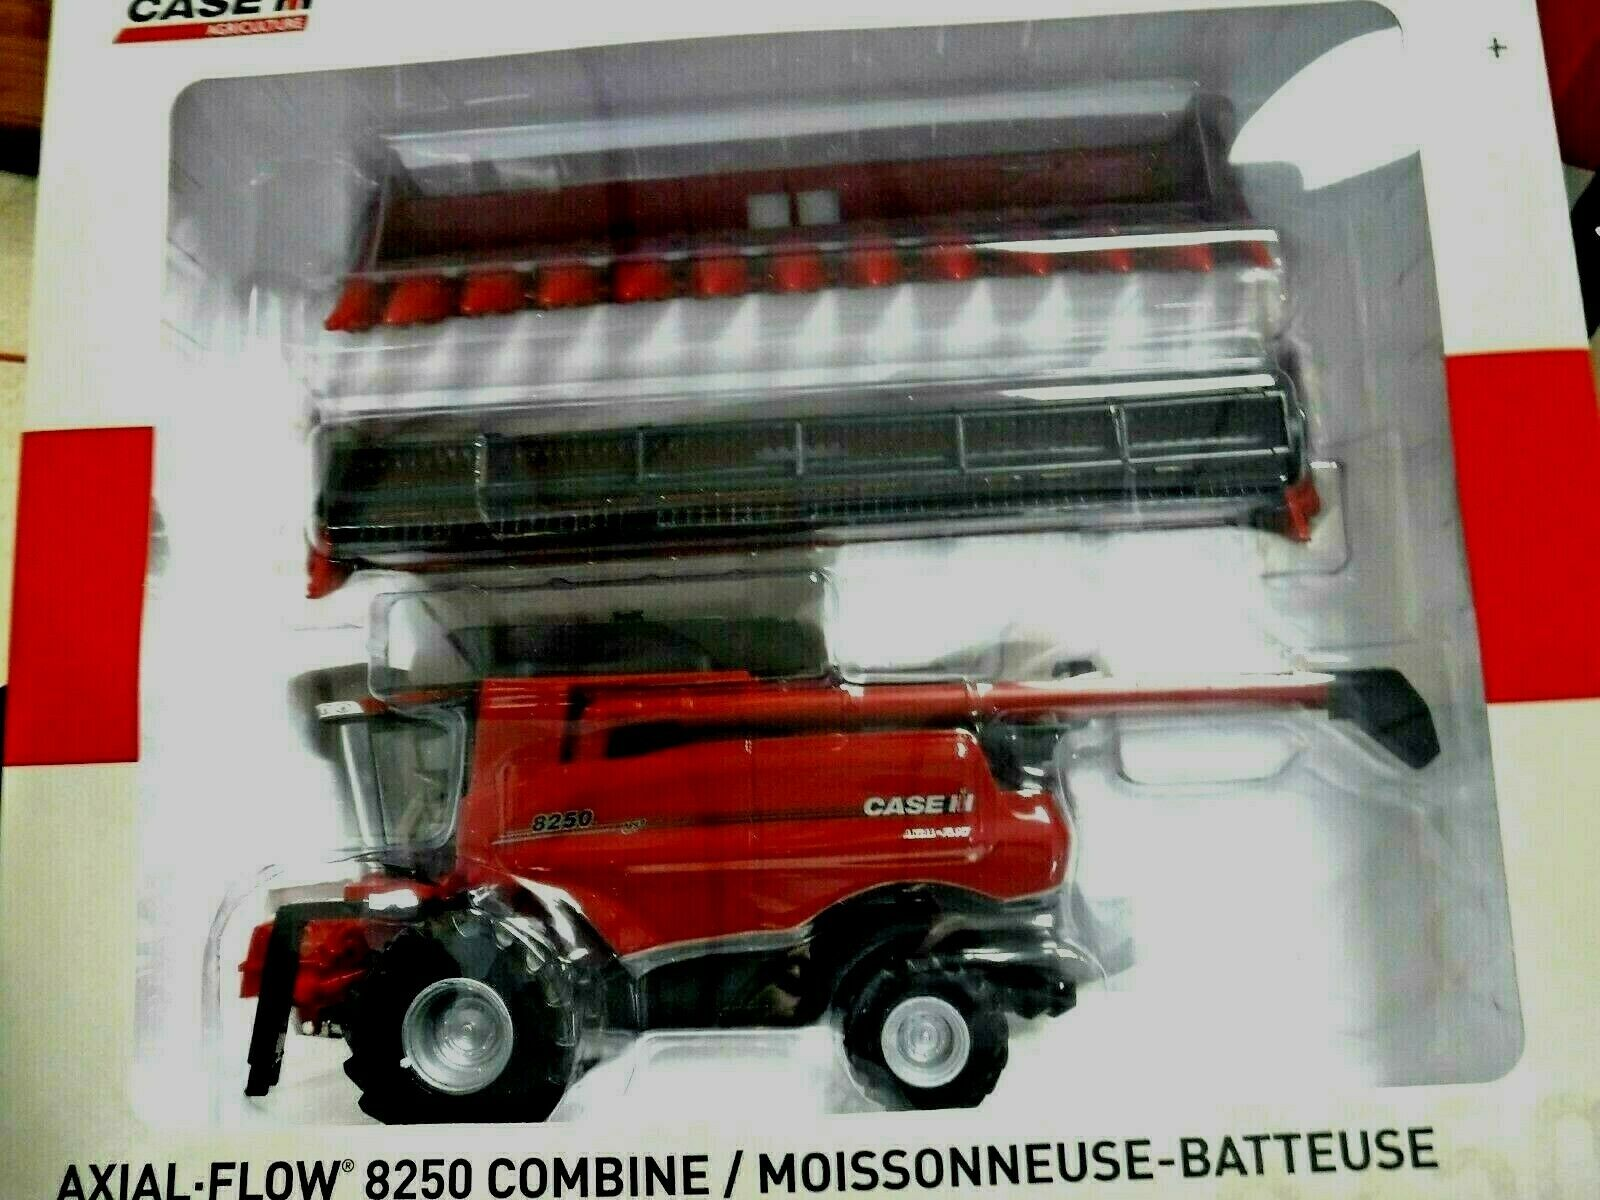 i nuovi marchi outlet online Case IH 8250 Axial Axial Axial Flow 1 32 Scale Replica giocattolo  shopping online di moda